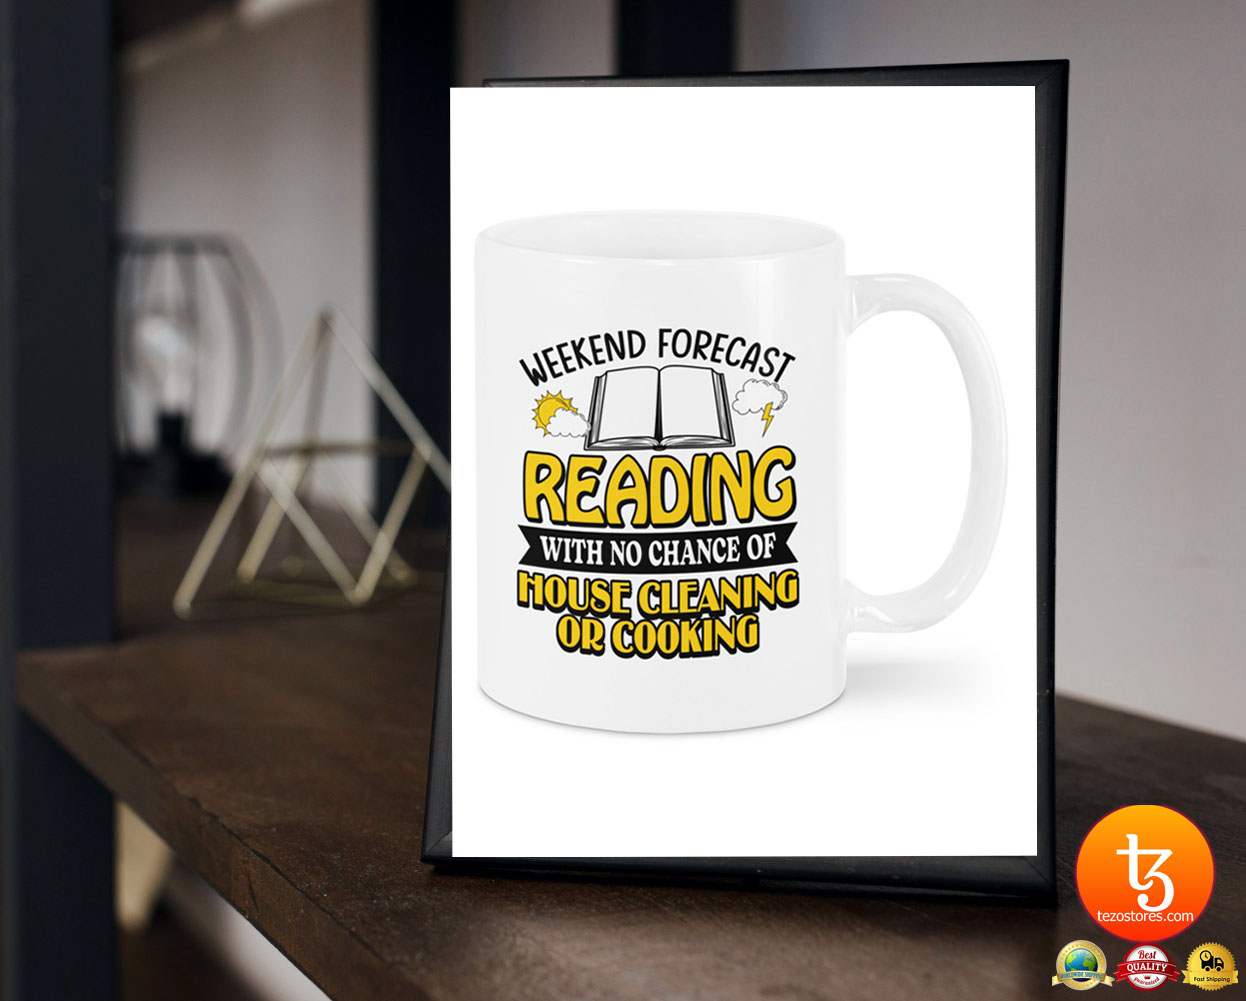 Weekend forecast reading with no chance of house cleaning or cooking mug